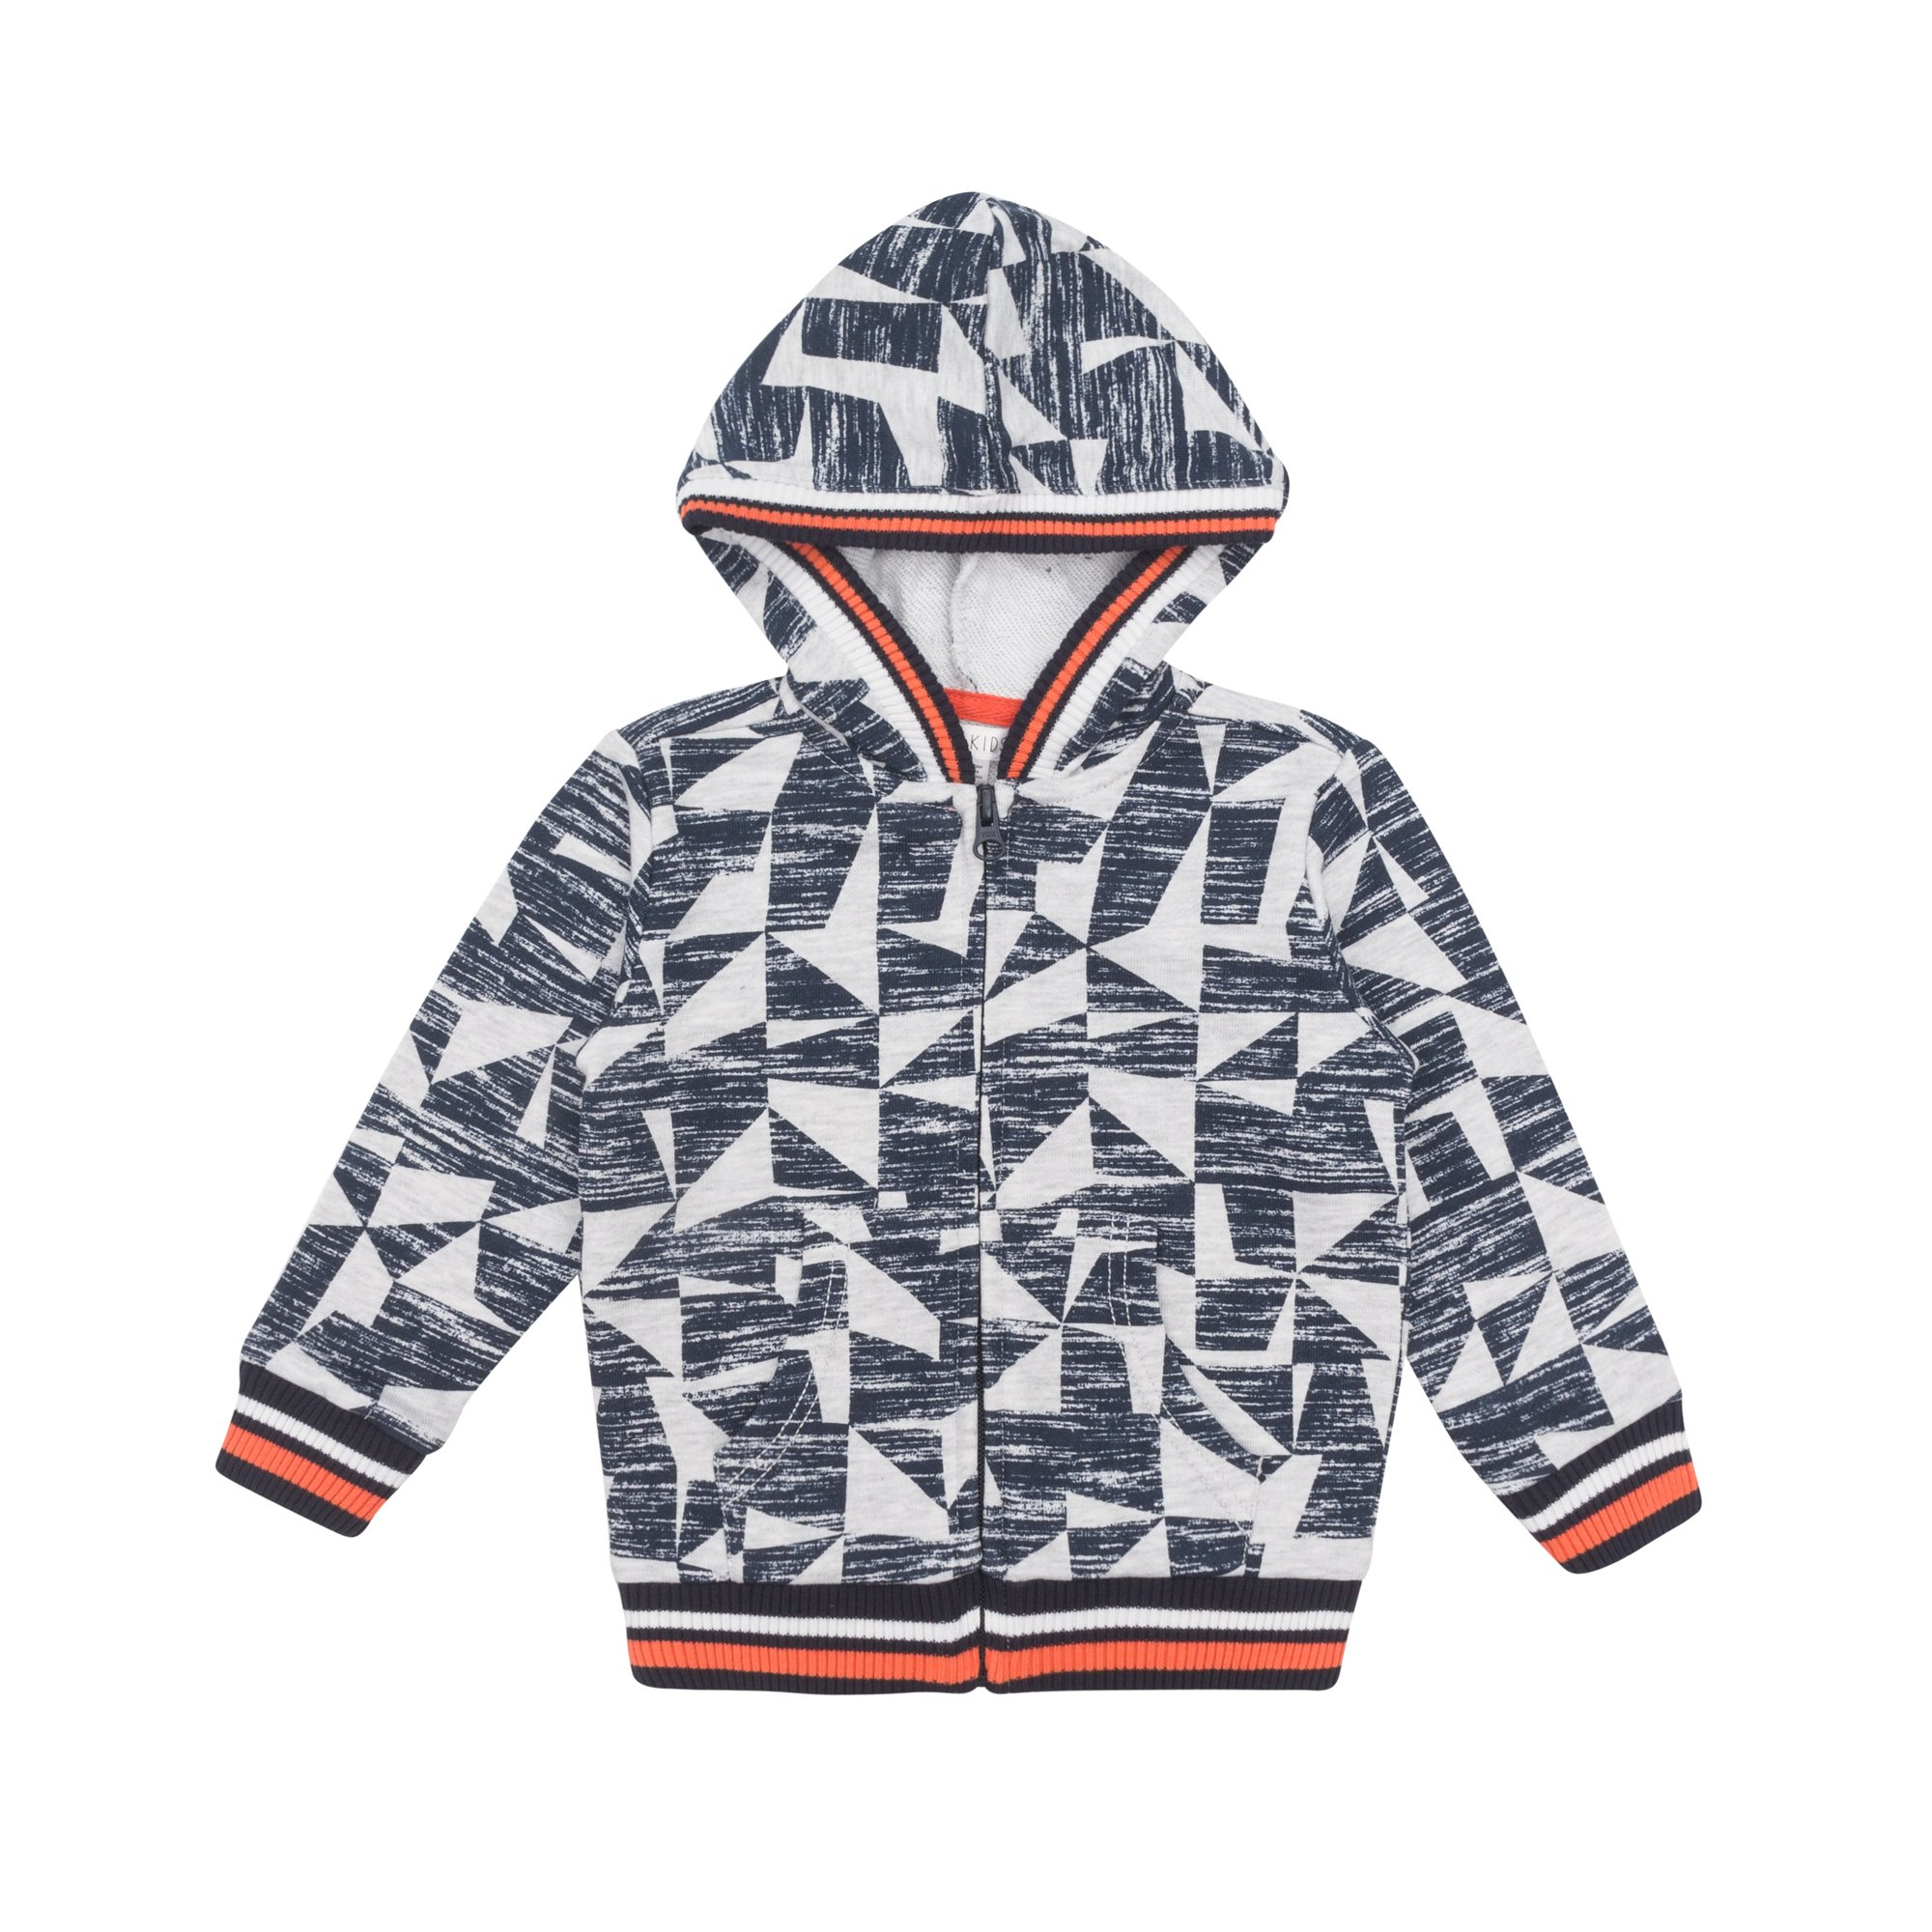 Petit Lem Big Hooded Sweater Top for Boys, Comfortable and Stylish, Light Heather Gray, 5